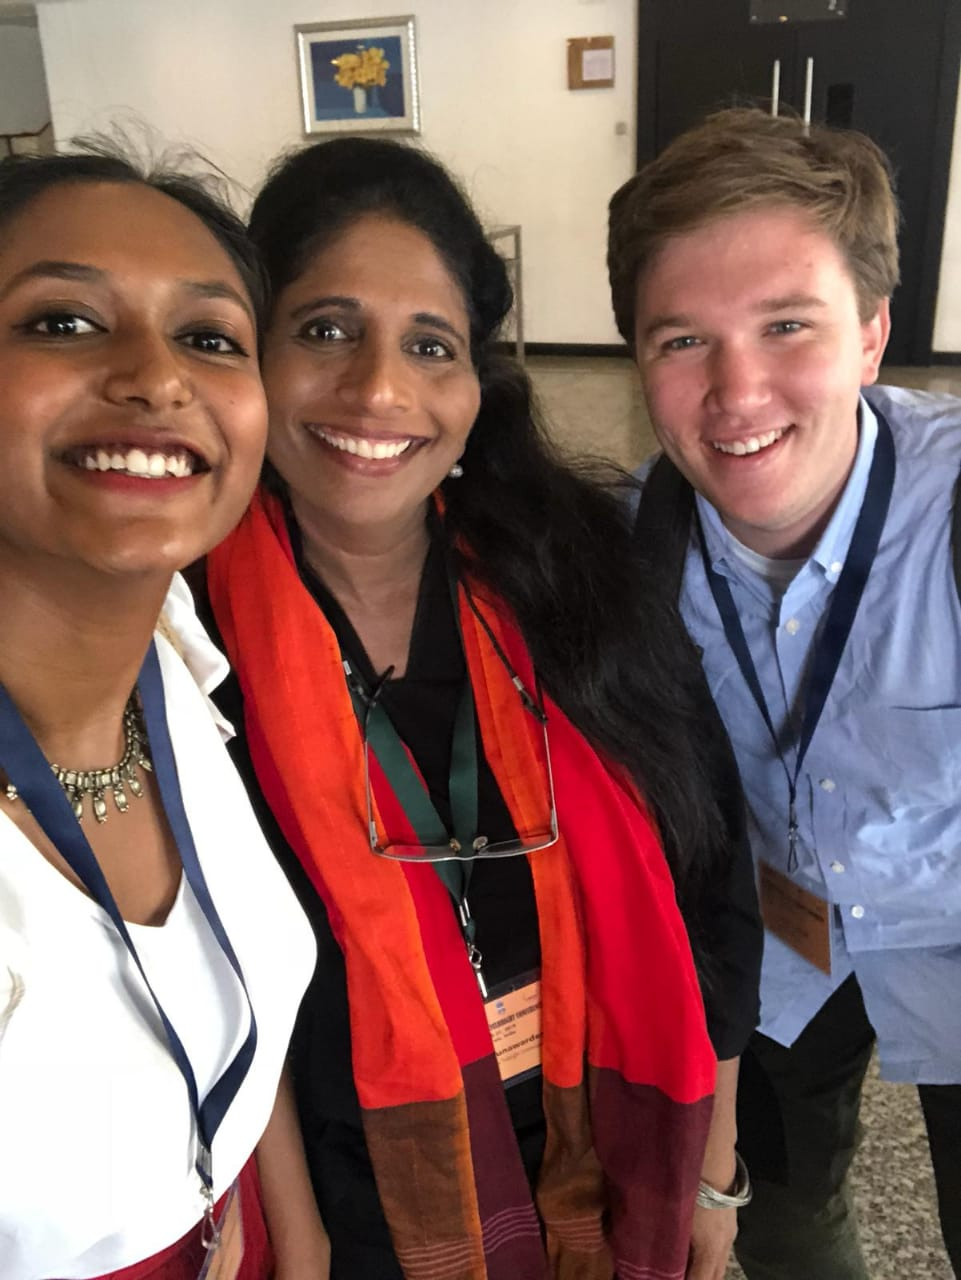 Quick break for a selfie during the last day of the conference with Meghana Nallajerla (another Sri Lanka Fulbright student) and Sandarshi Gunawardena (Executive Director of US-SLFC).